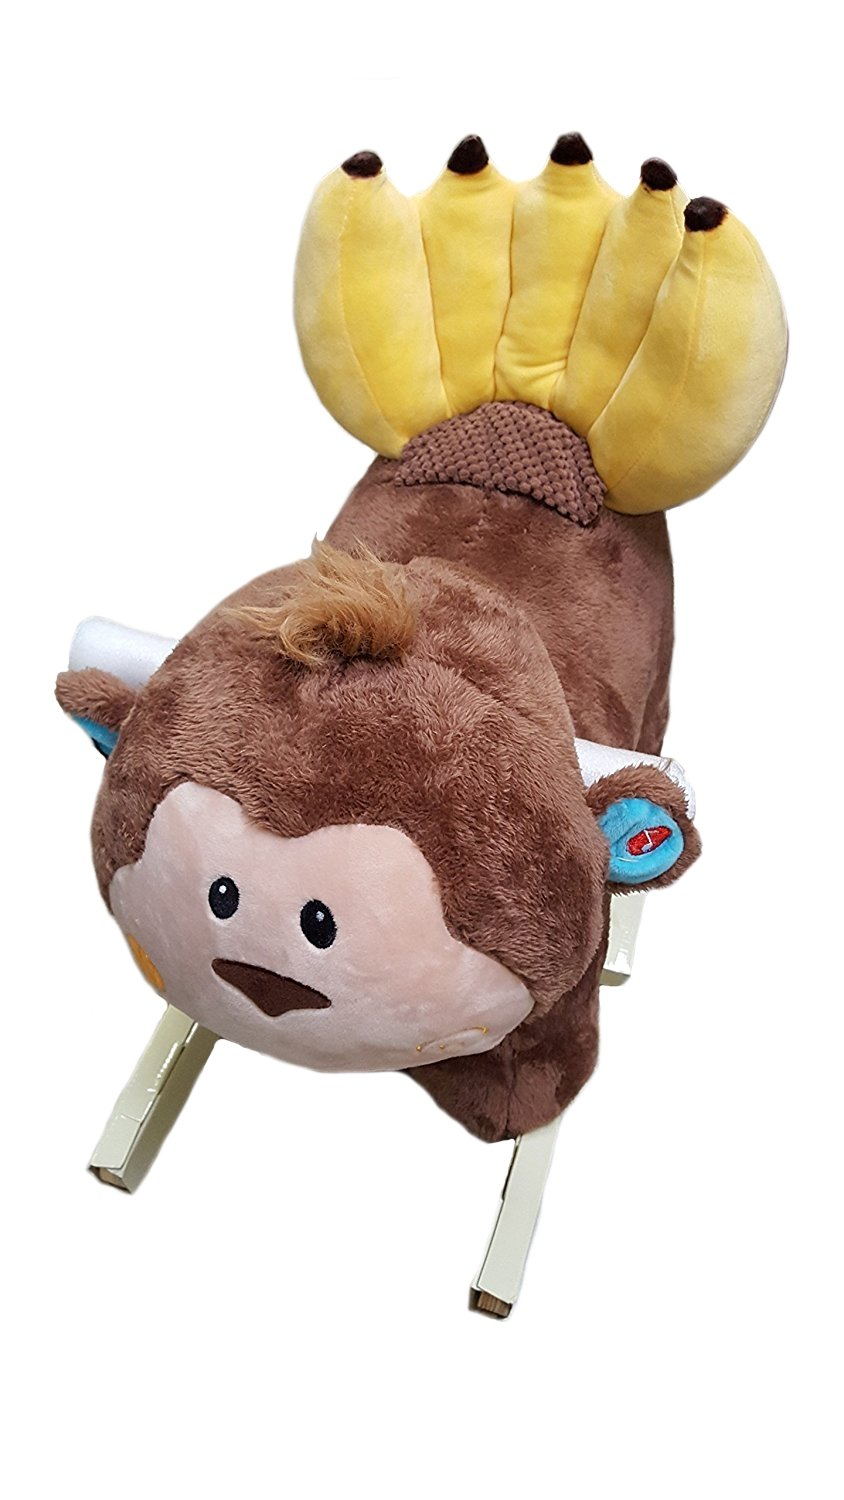 Hug Fun Musical Animal Rocker Rider Monkey by Hugfun